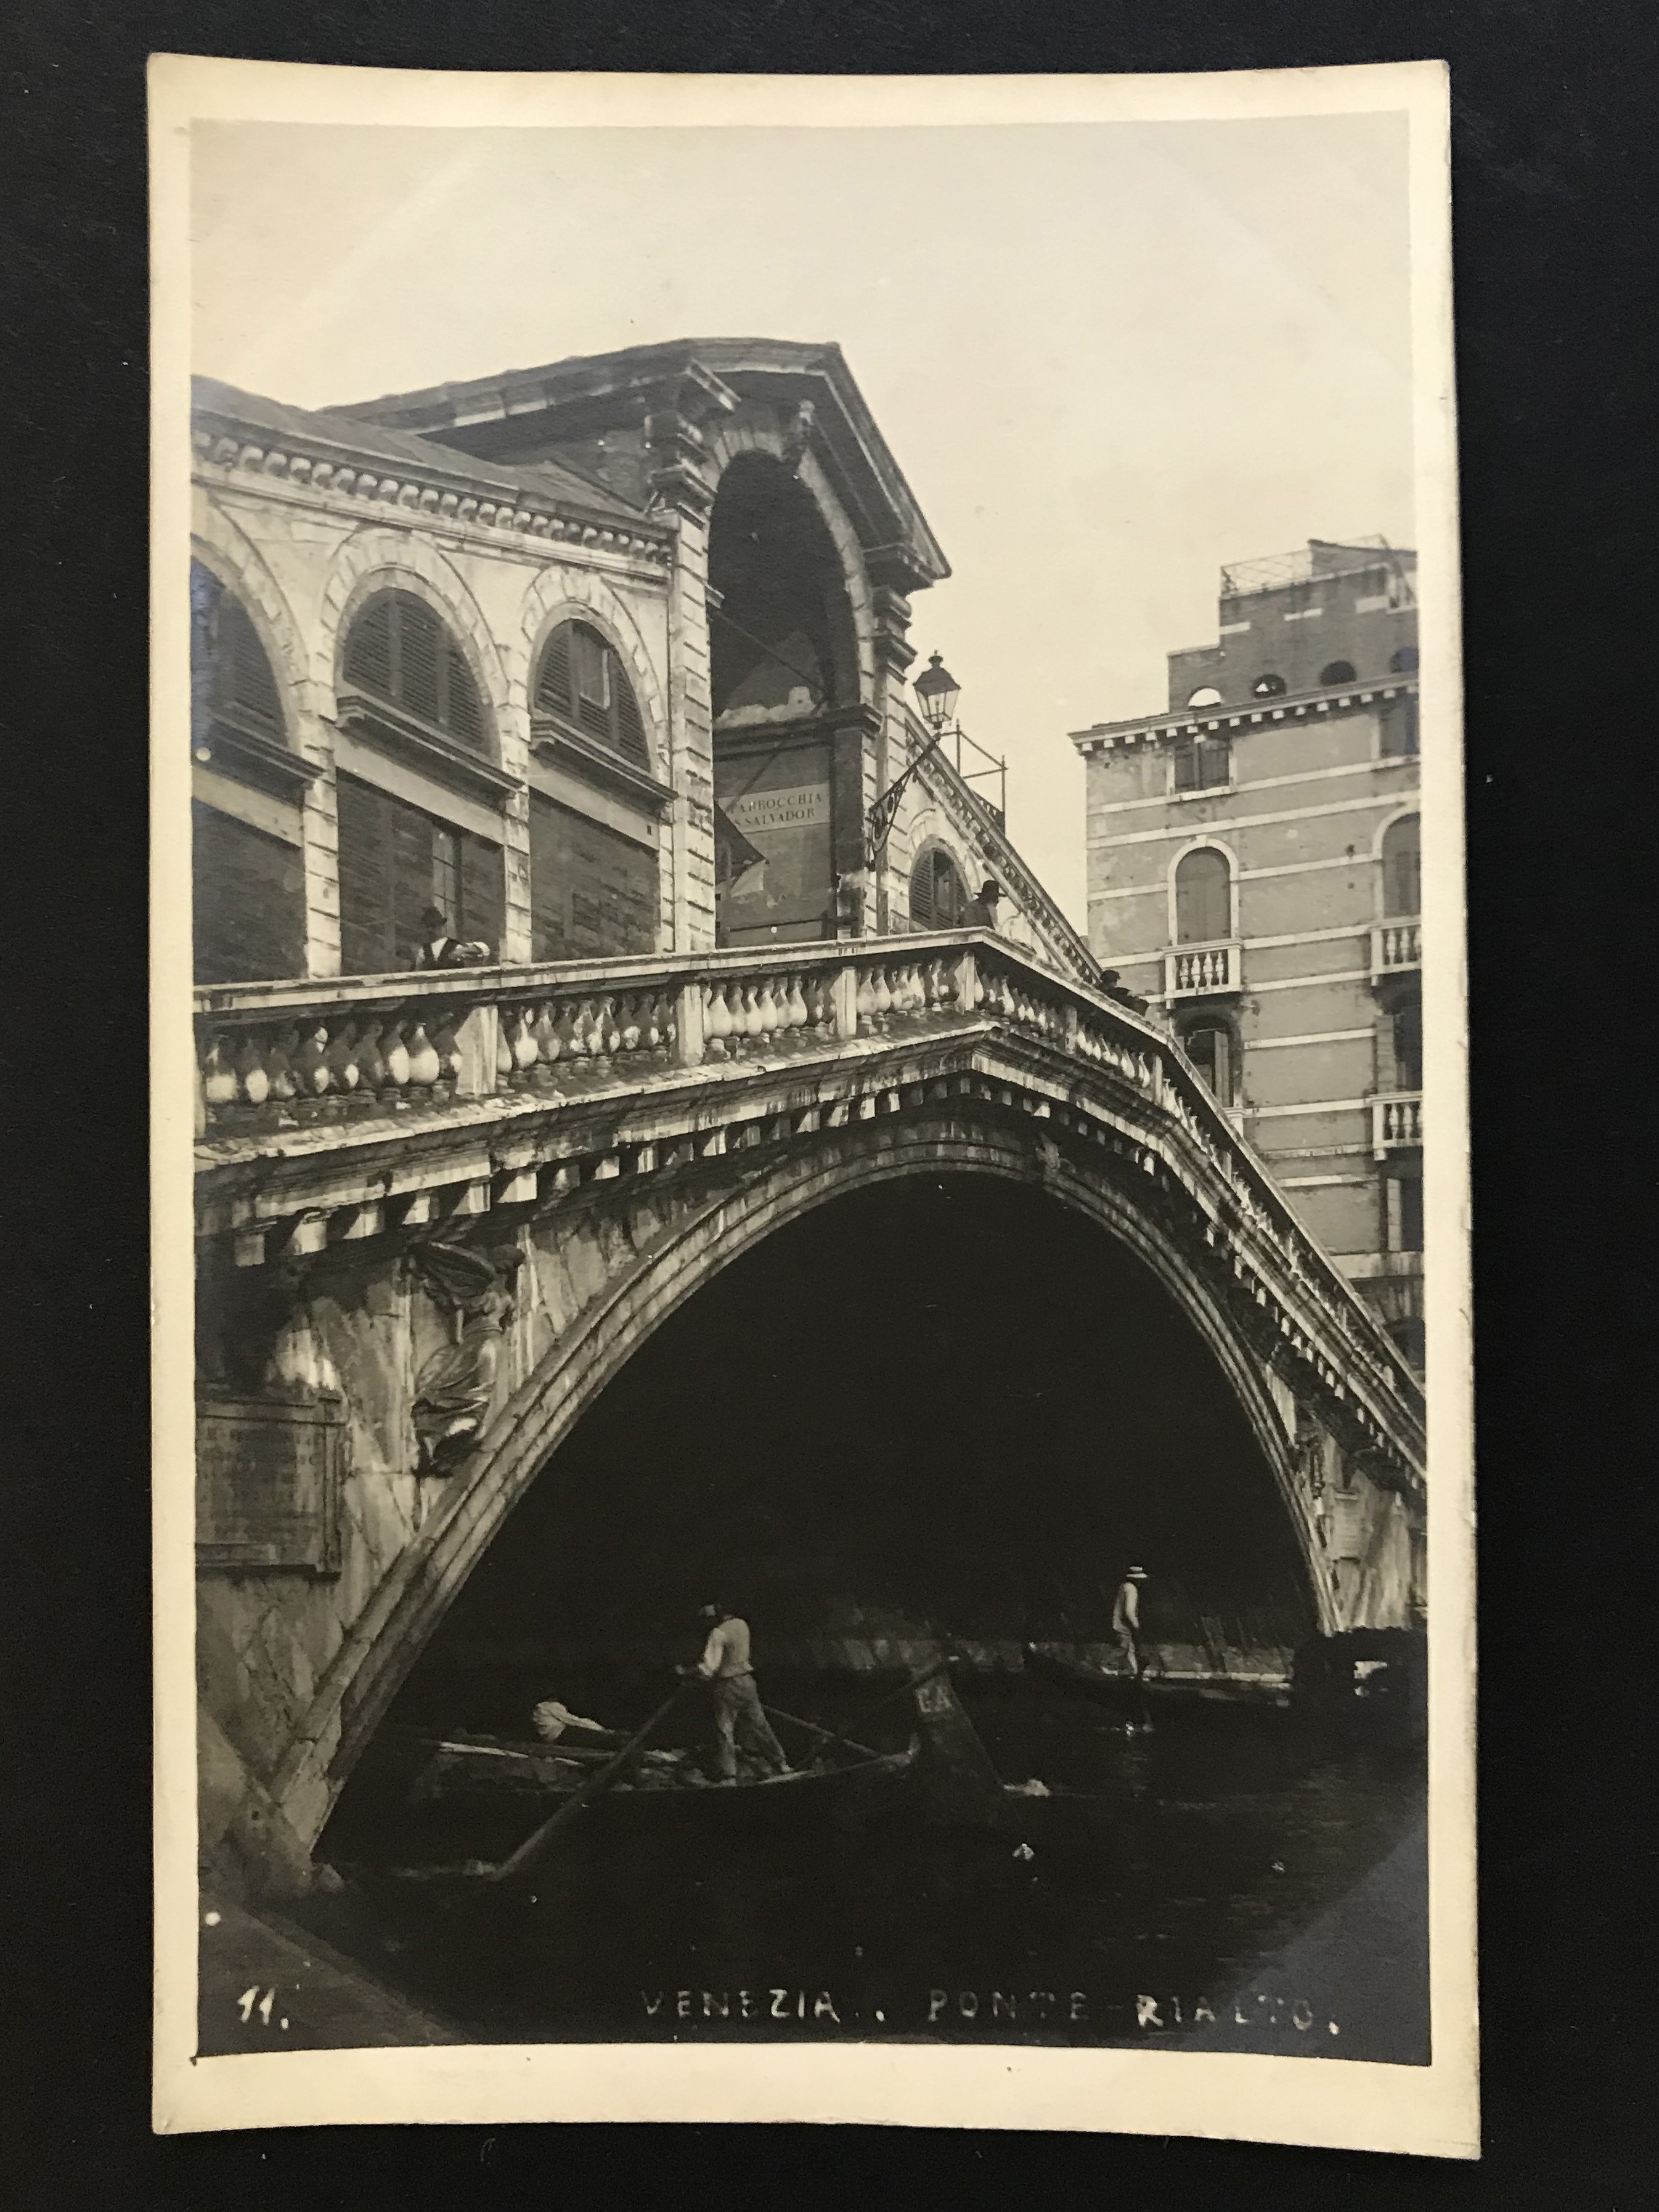 SELECTION OF VENICE RELATED POSTCARDS - Image 27 of 53